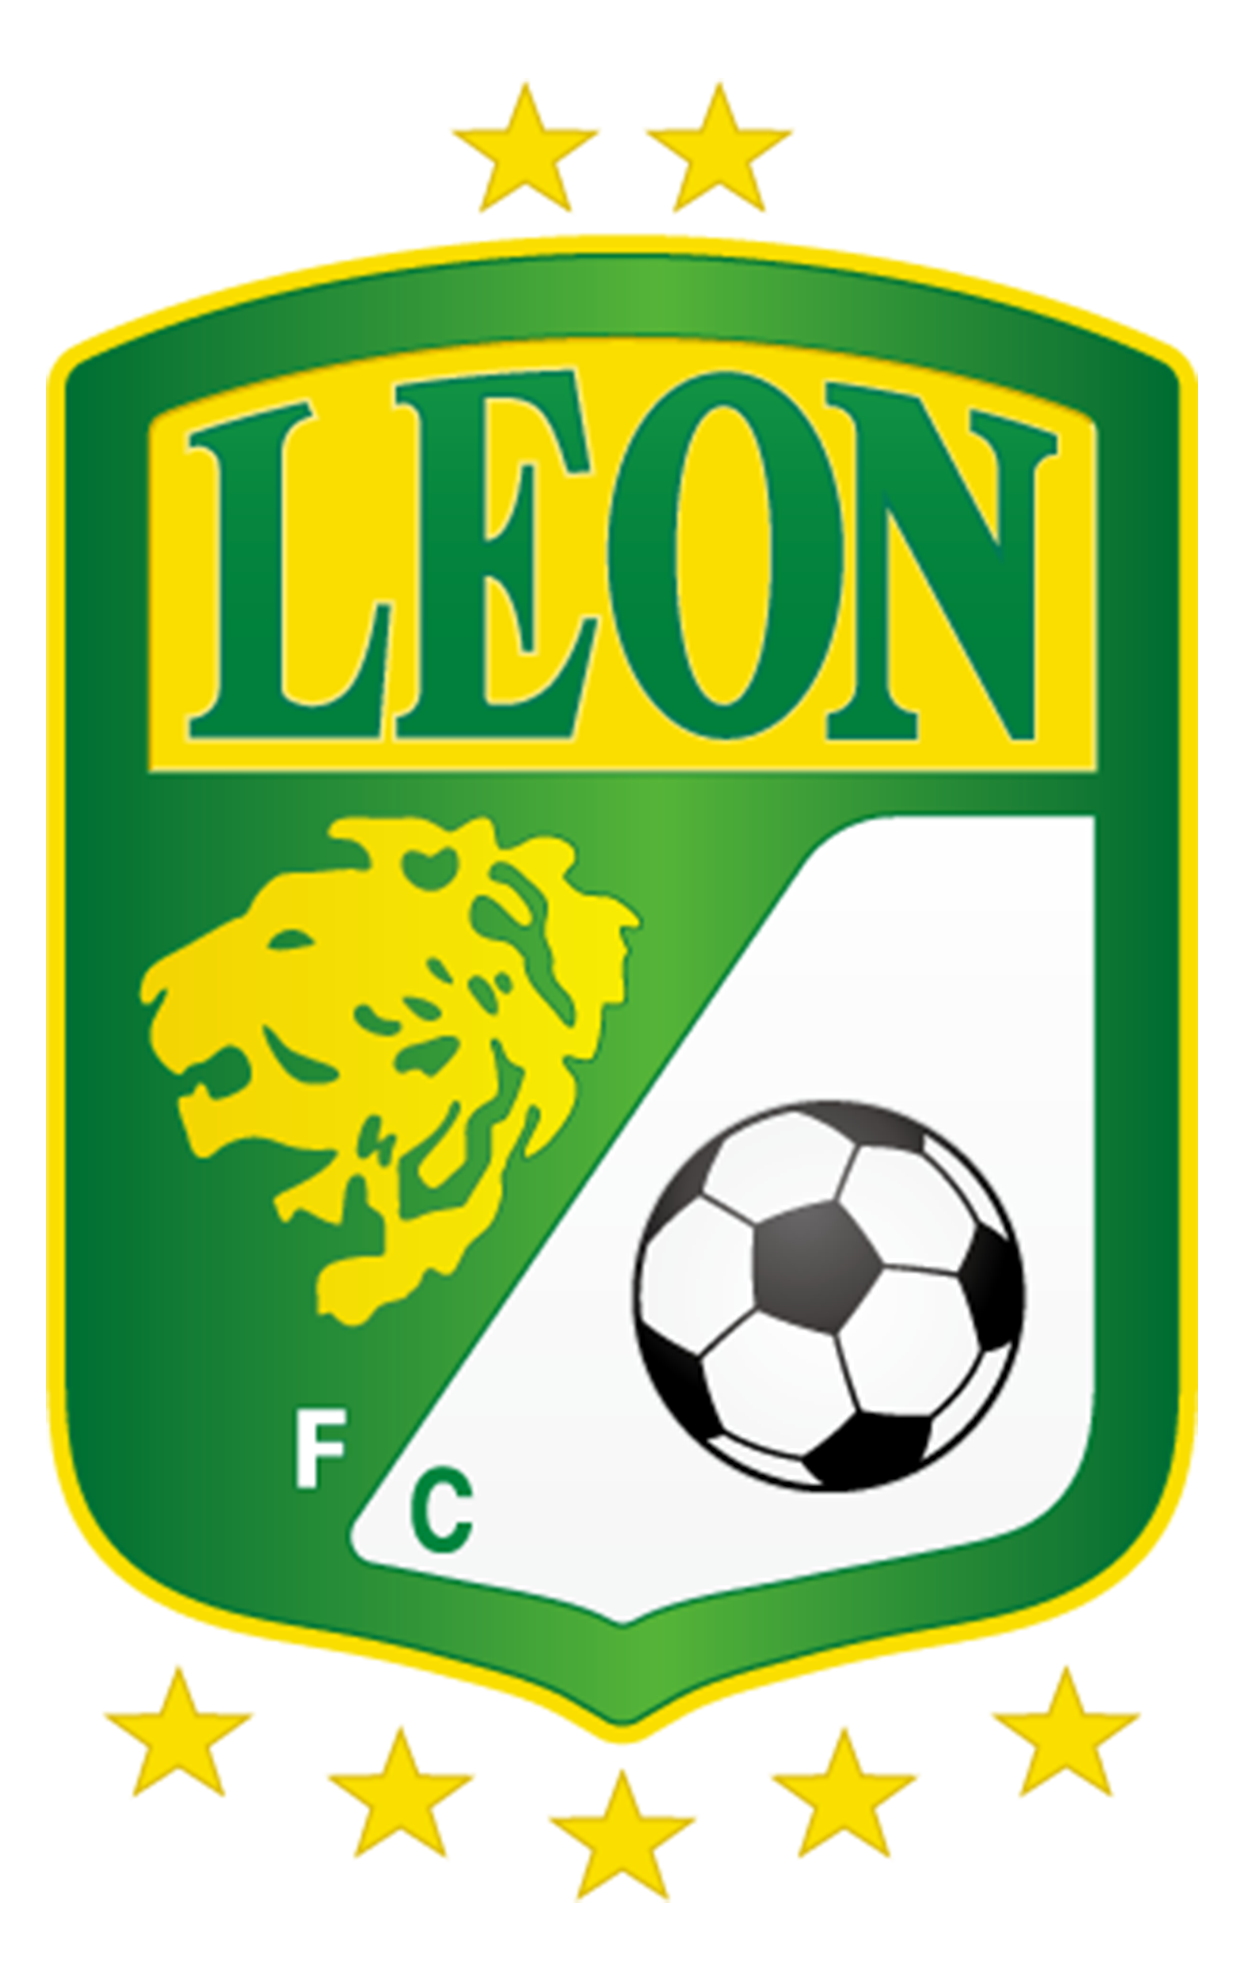 LEON_official_logo